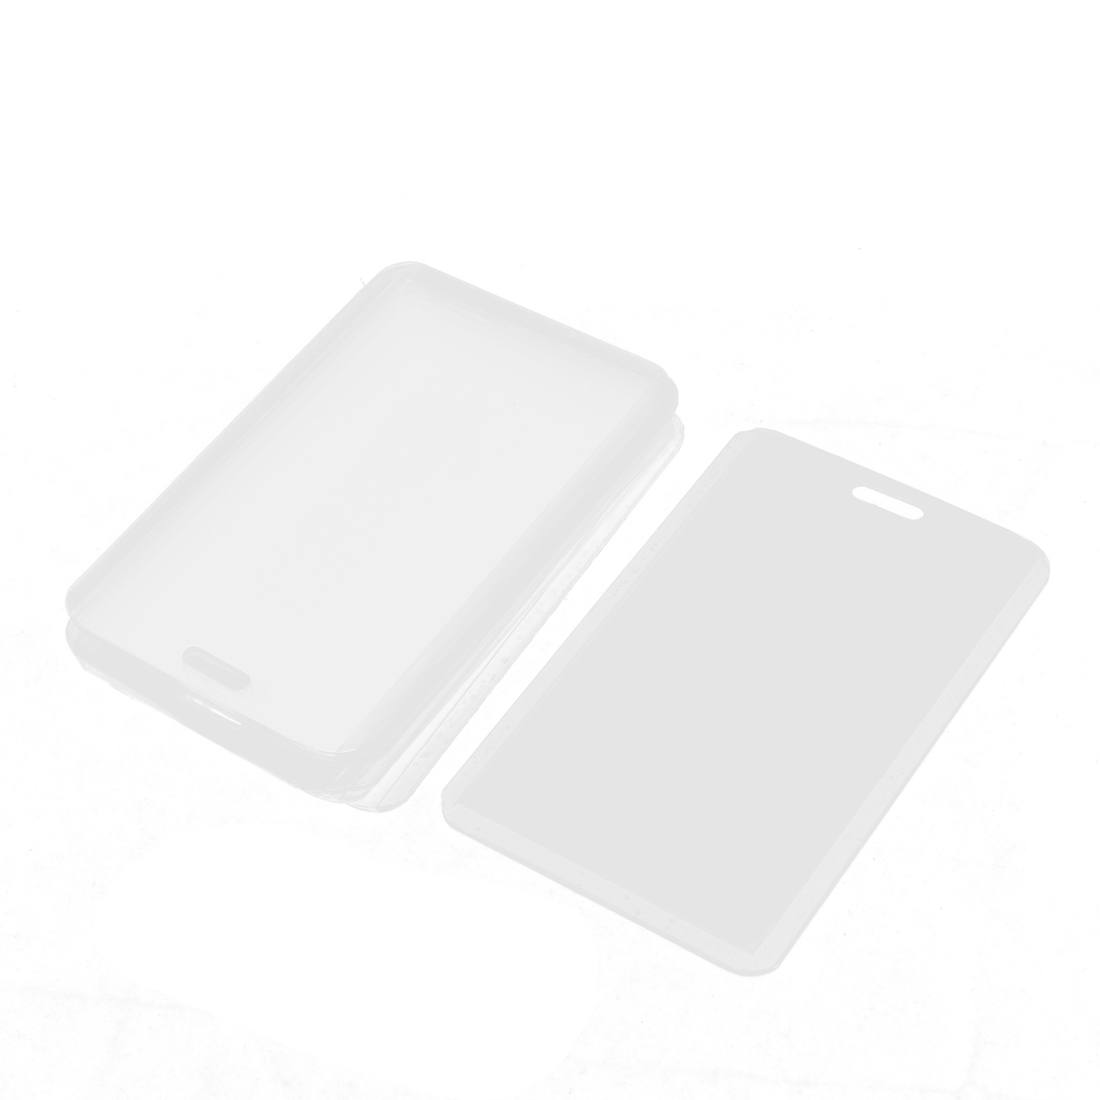 Plastic Vertical Photo Name Tag Company Position ID Work Badge Card Holder 10PCS